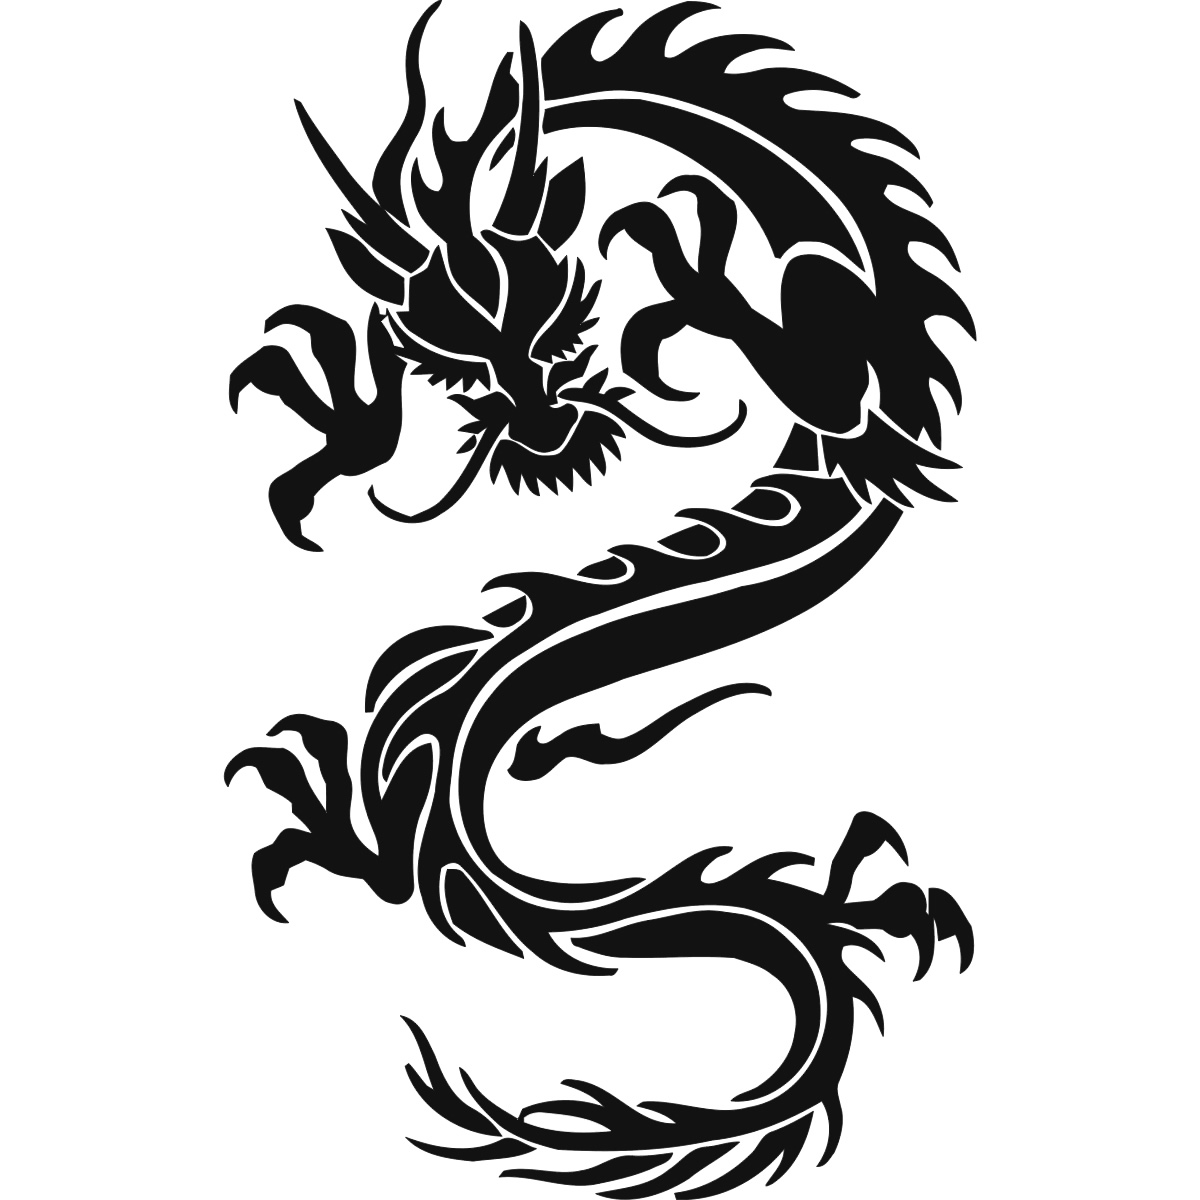 long windy dragon wall art sticker wall decals transfers ebay. Black Bedroom Furniture Sets. Home Design Ideas